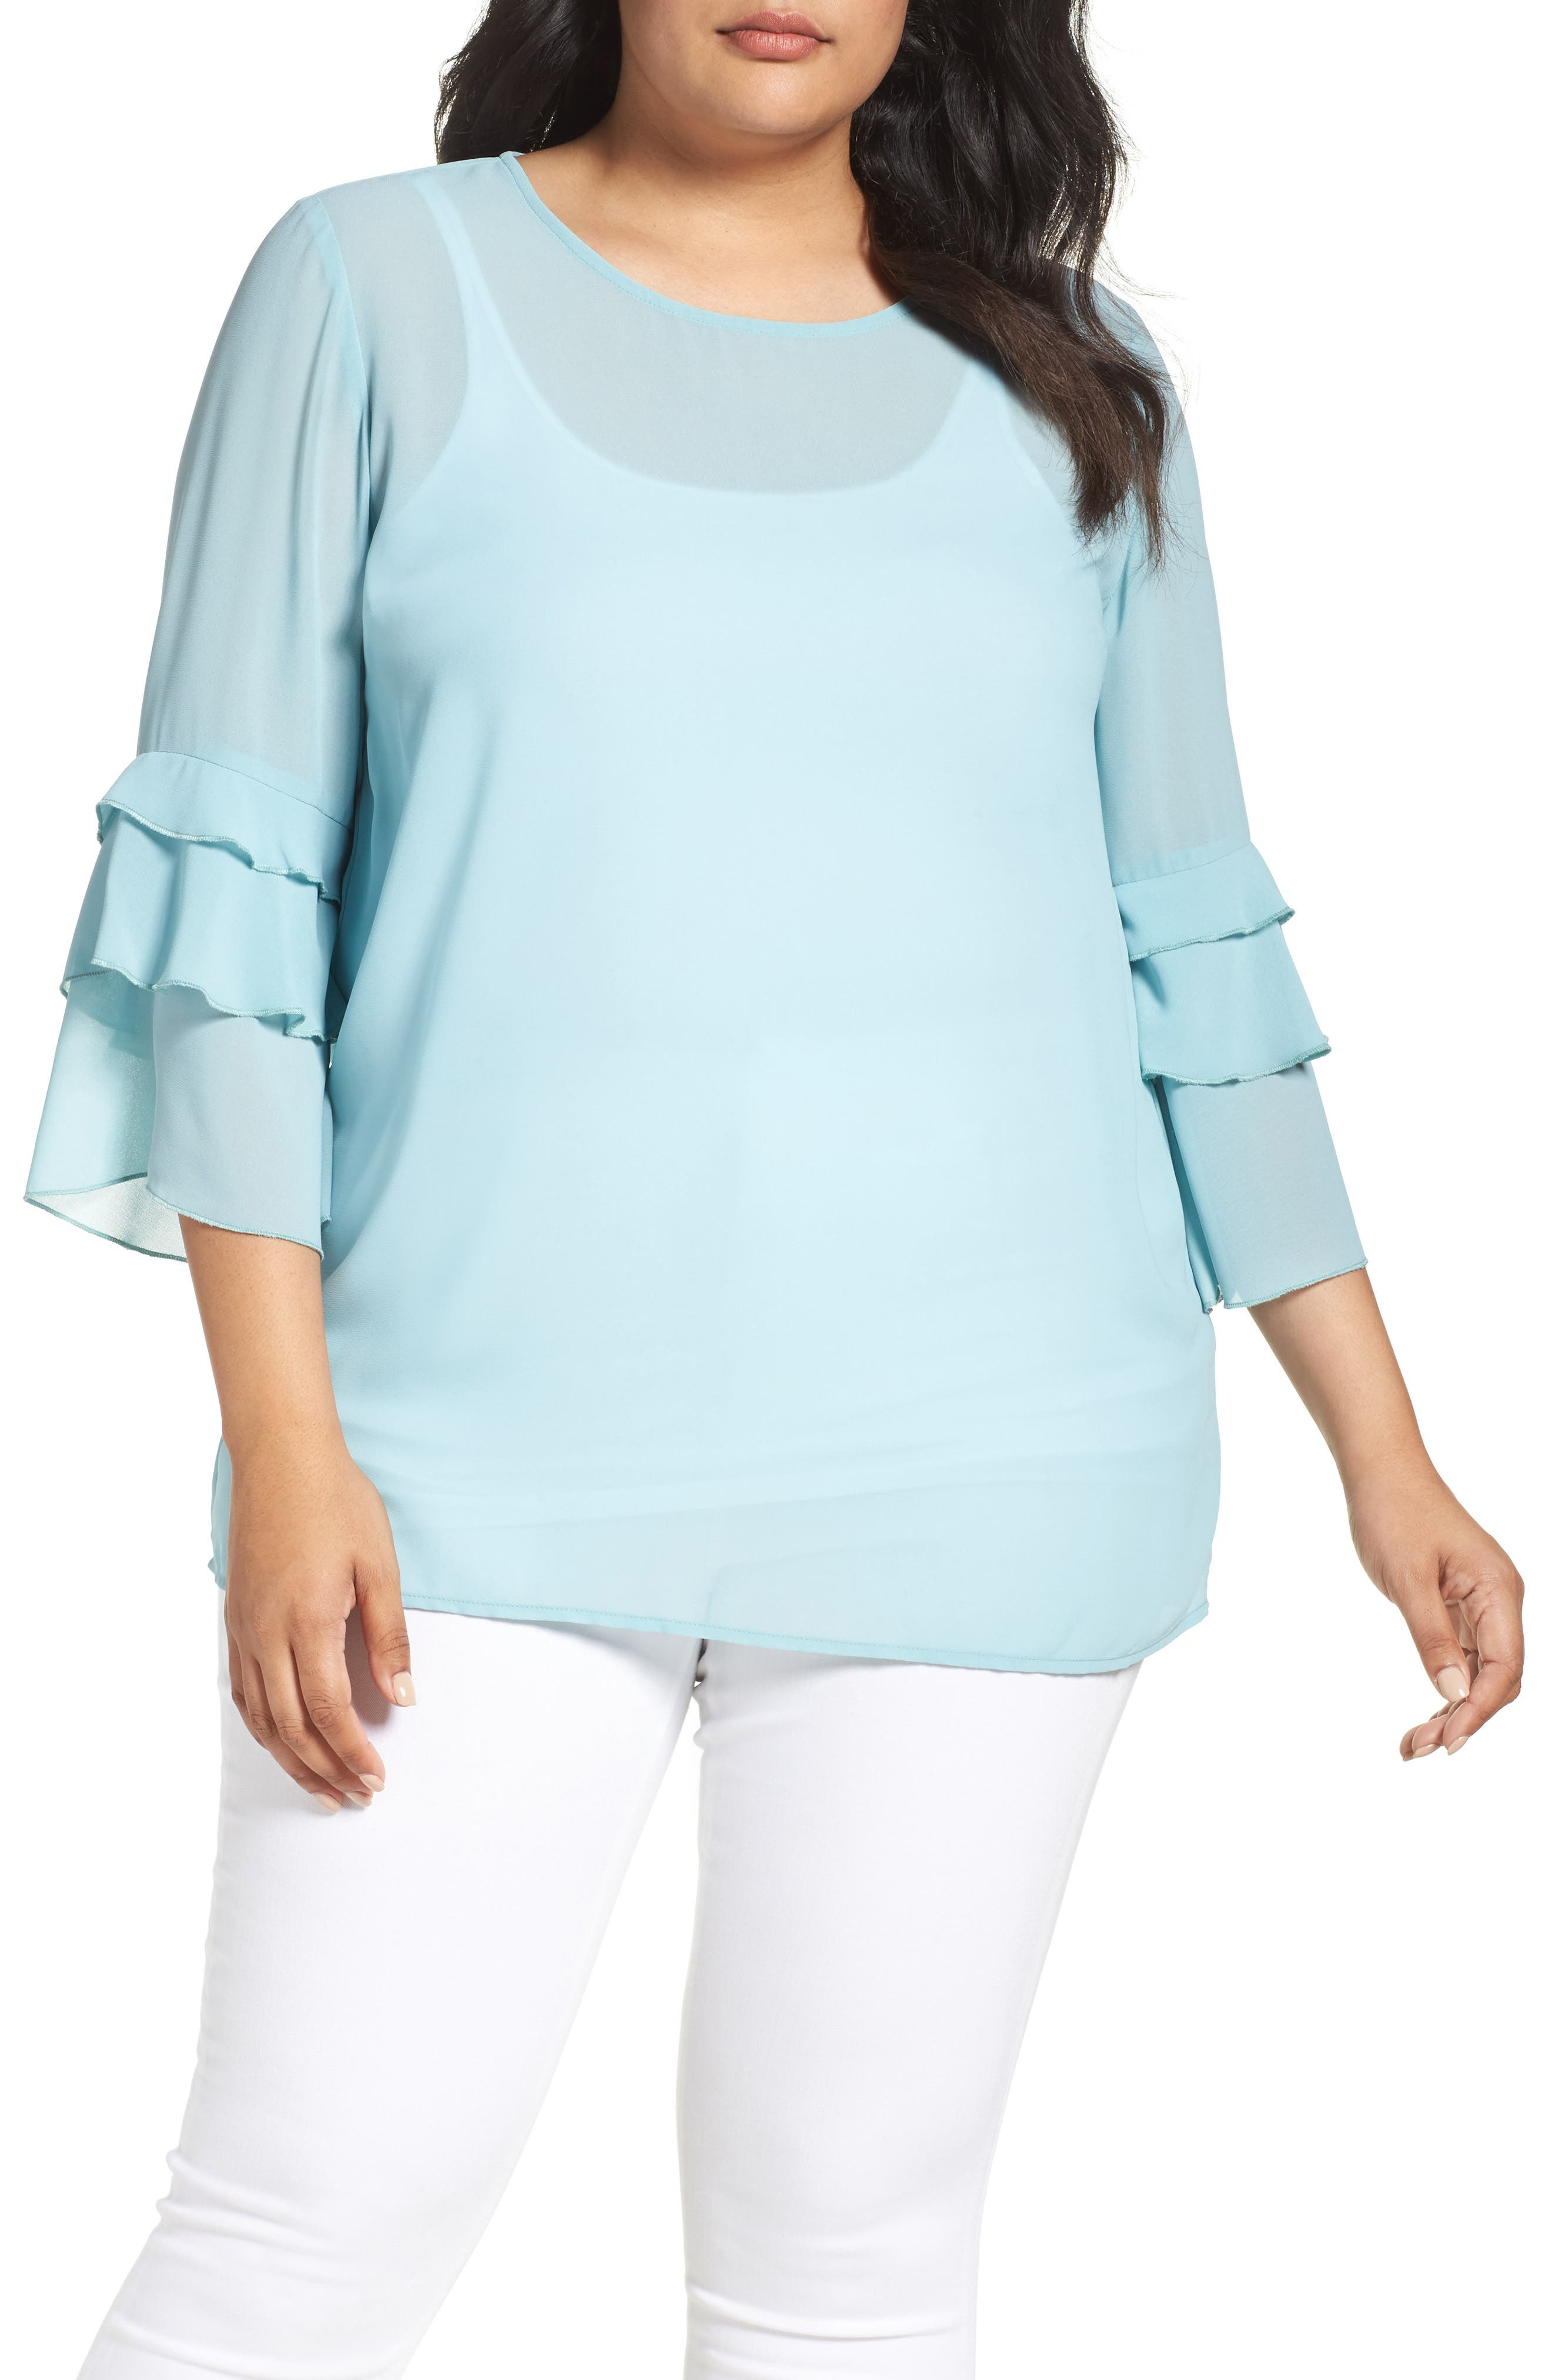 Ruffle Sleeve Blouse,                         Main,                         color, Blue